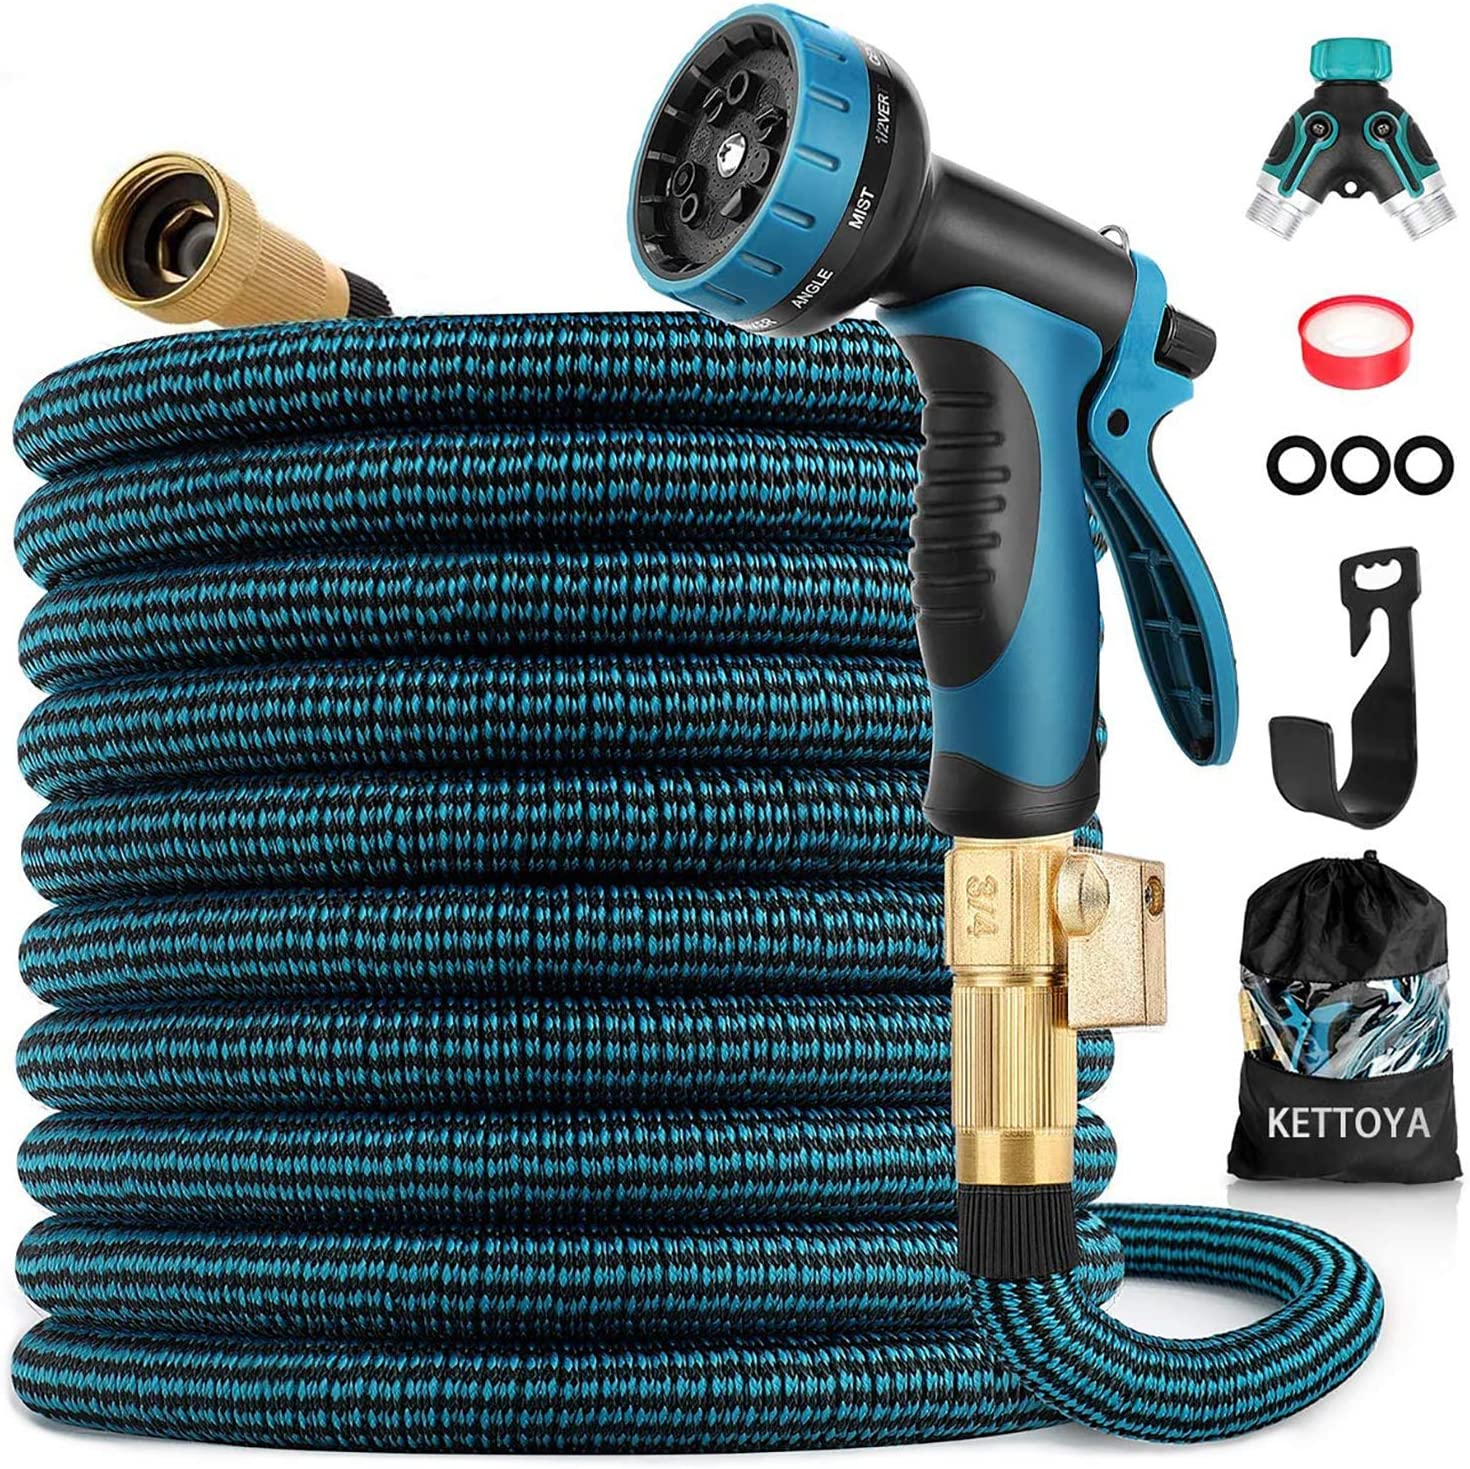 KETTOYA Expandable Garden Hose 100 FT, Heavy Duty Water Hose with 10 Patterns Spray Nozzle and Durable Latex Core, 3/4 Inch Solid Brass Fittings, Flexible Lightweight Retractable Shrinkable Water Hose